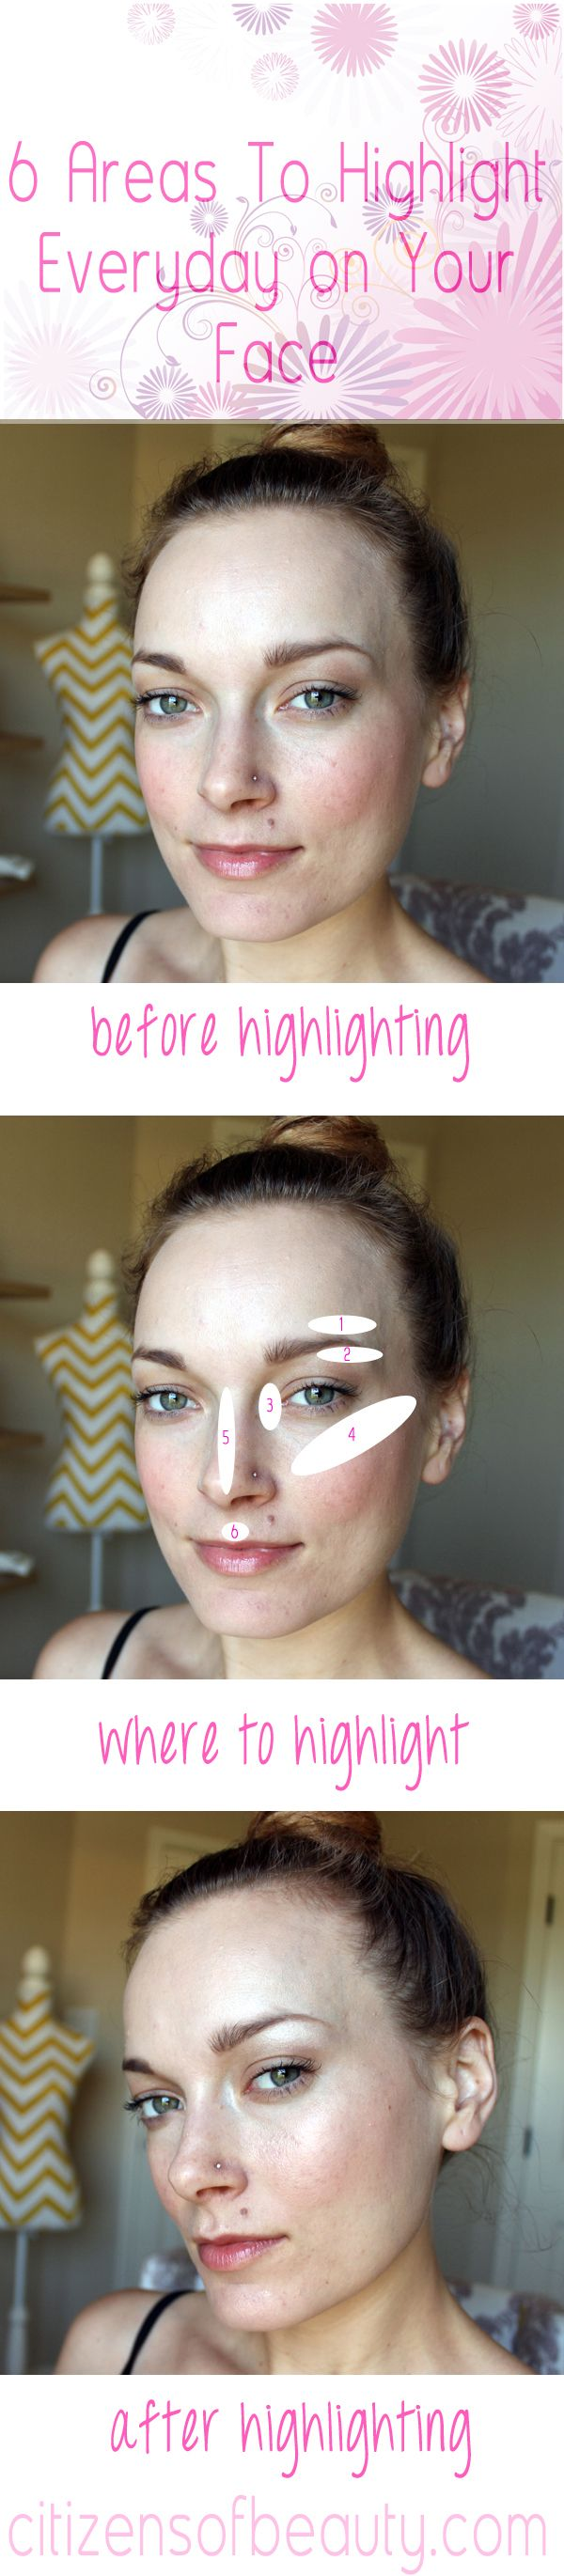 6 Areas of Your Face to Highlight Everyday via @citizensofbeauty #highlighting #MAC